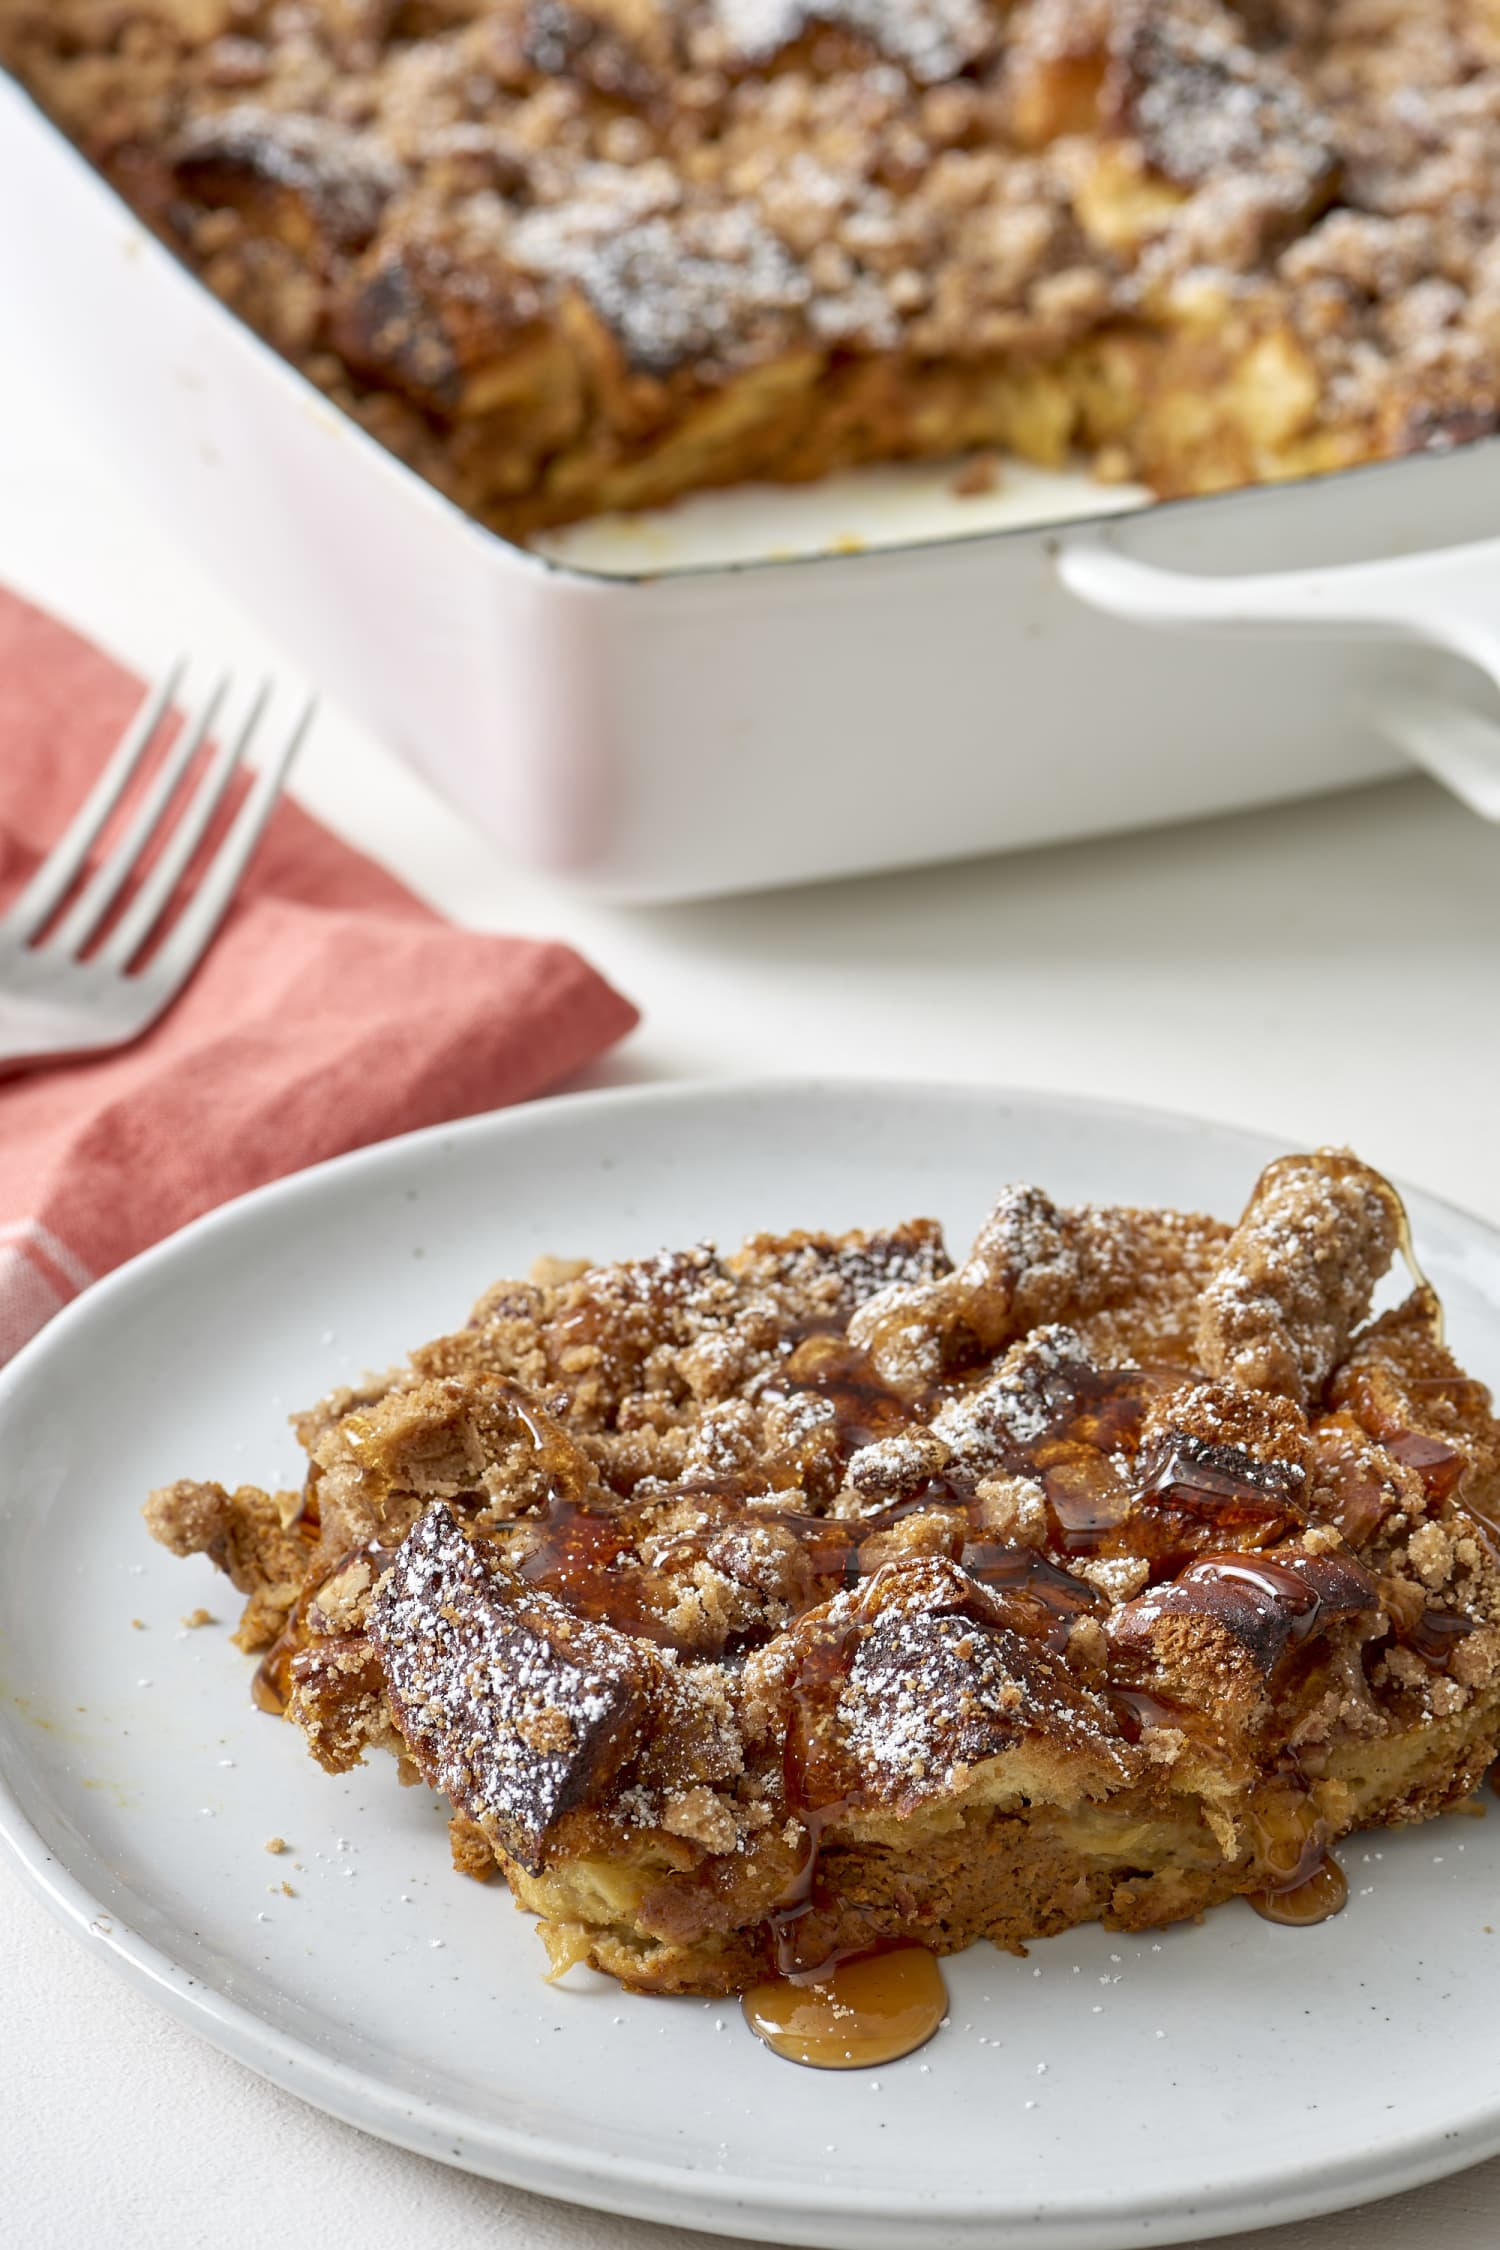 Recipe: Make-Ahead Pumpkin French Toast Casserole